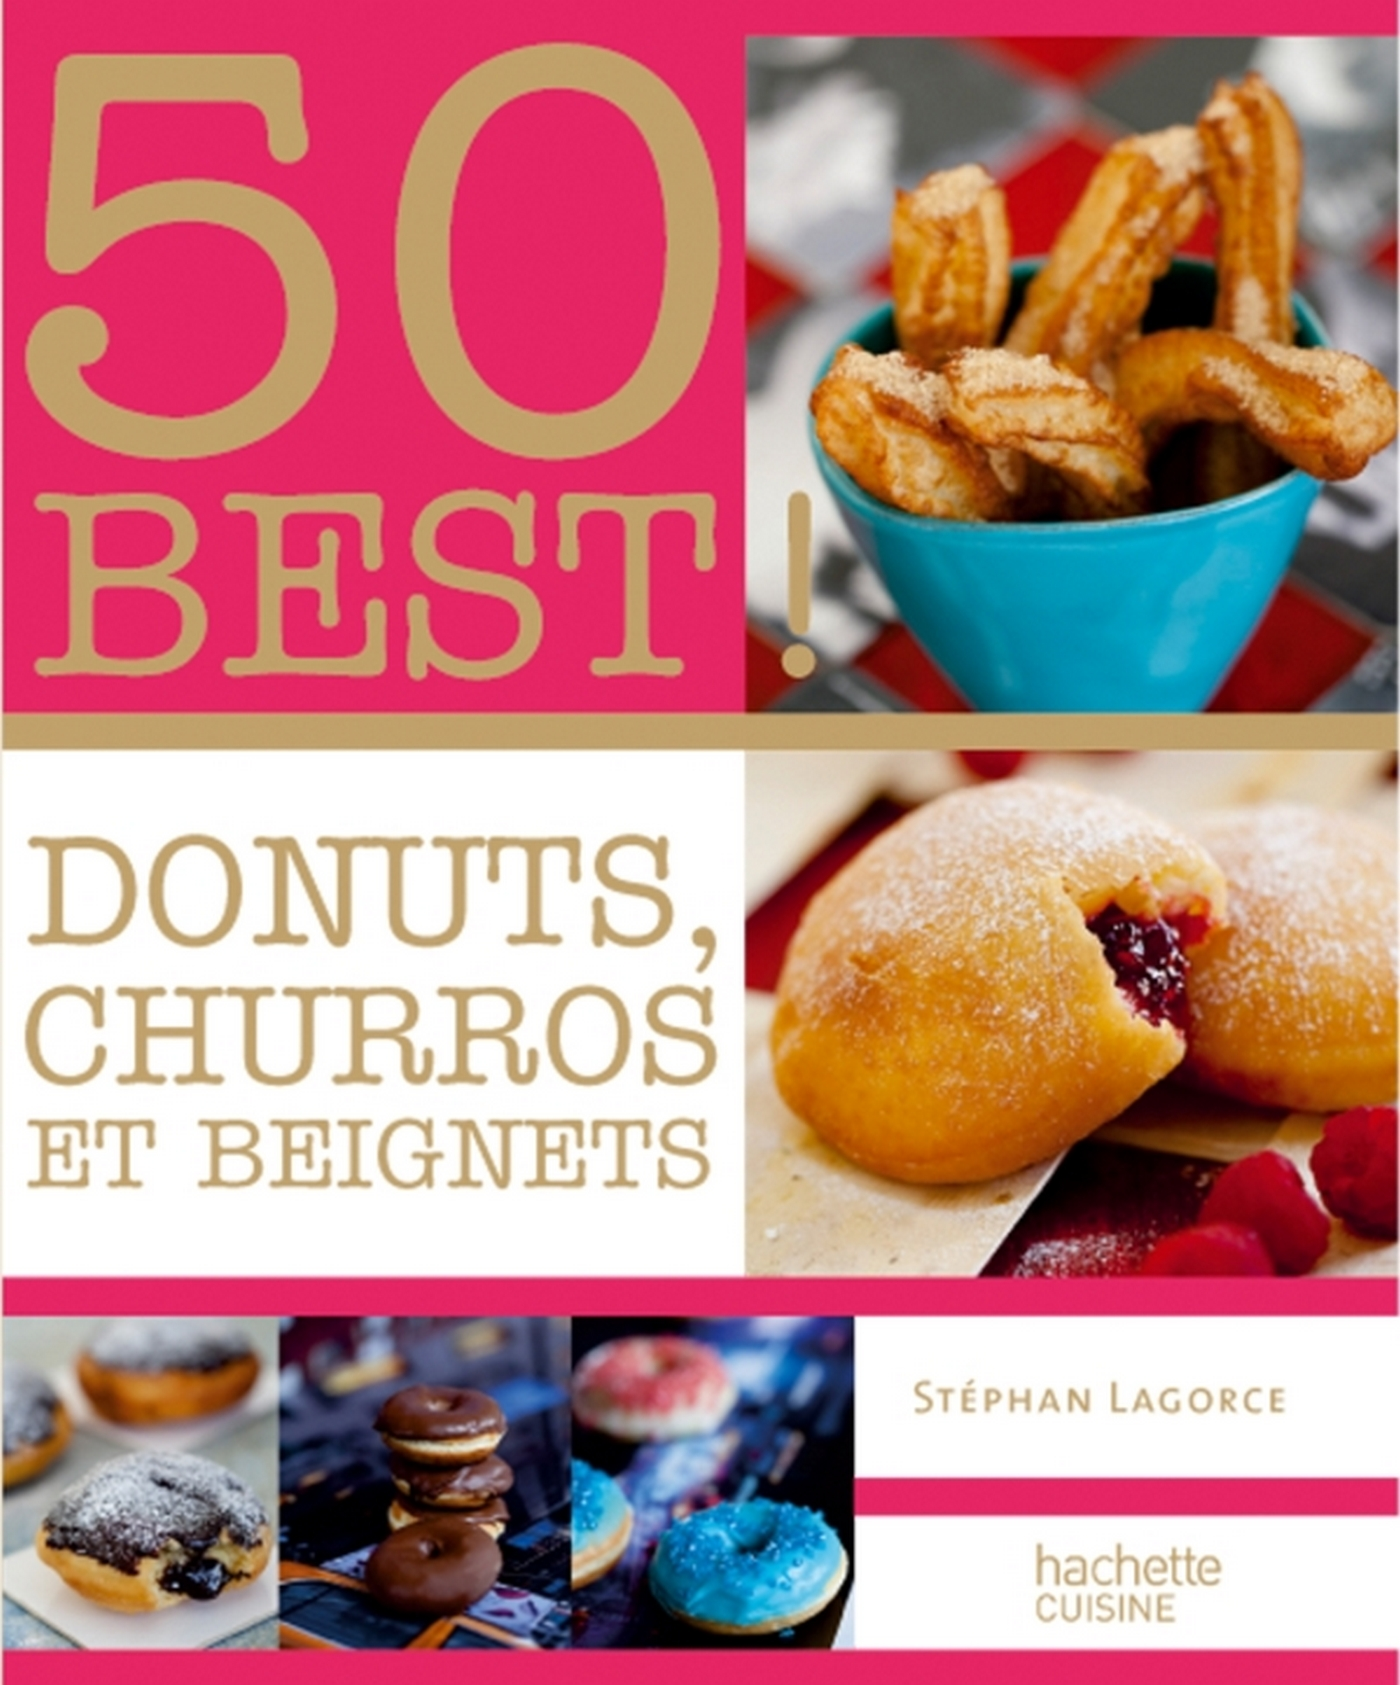 Donuts, Beignets et Churros